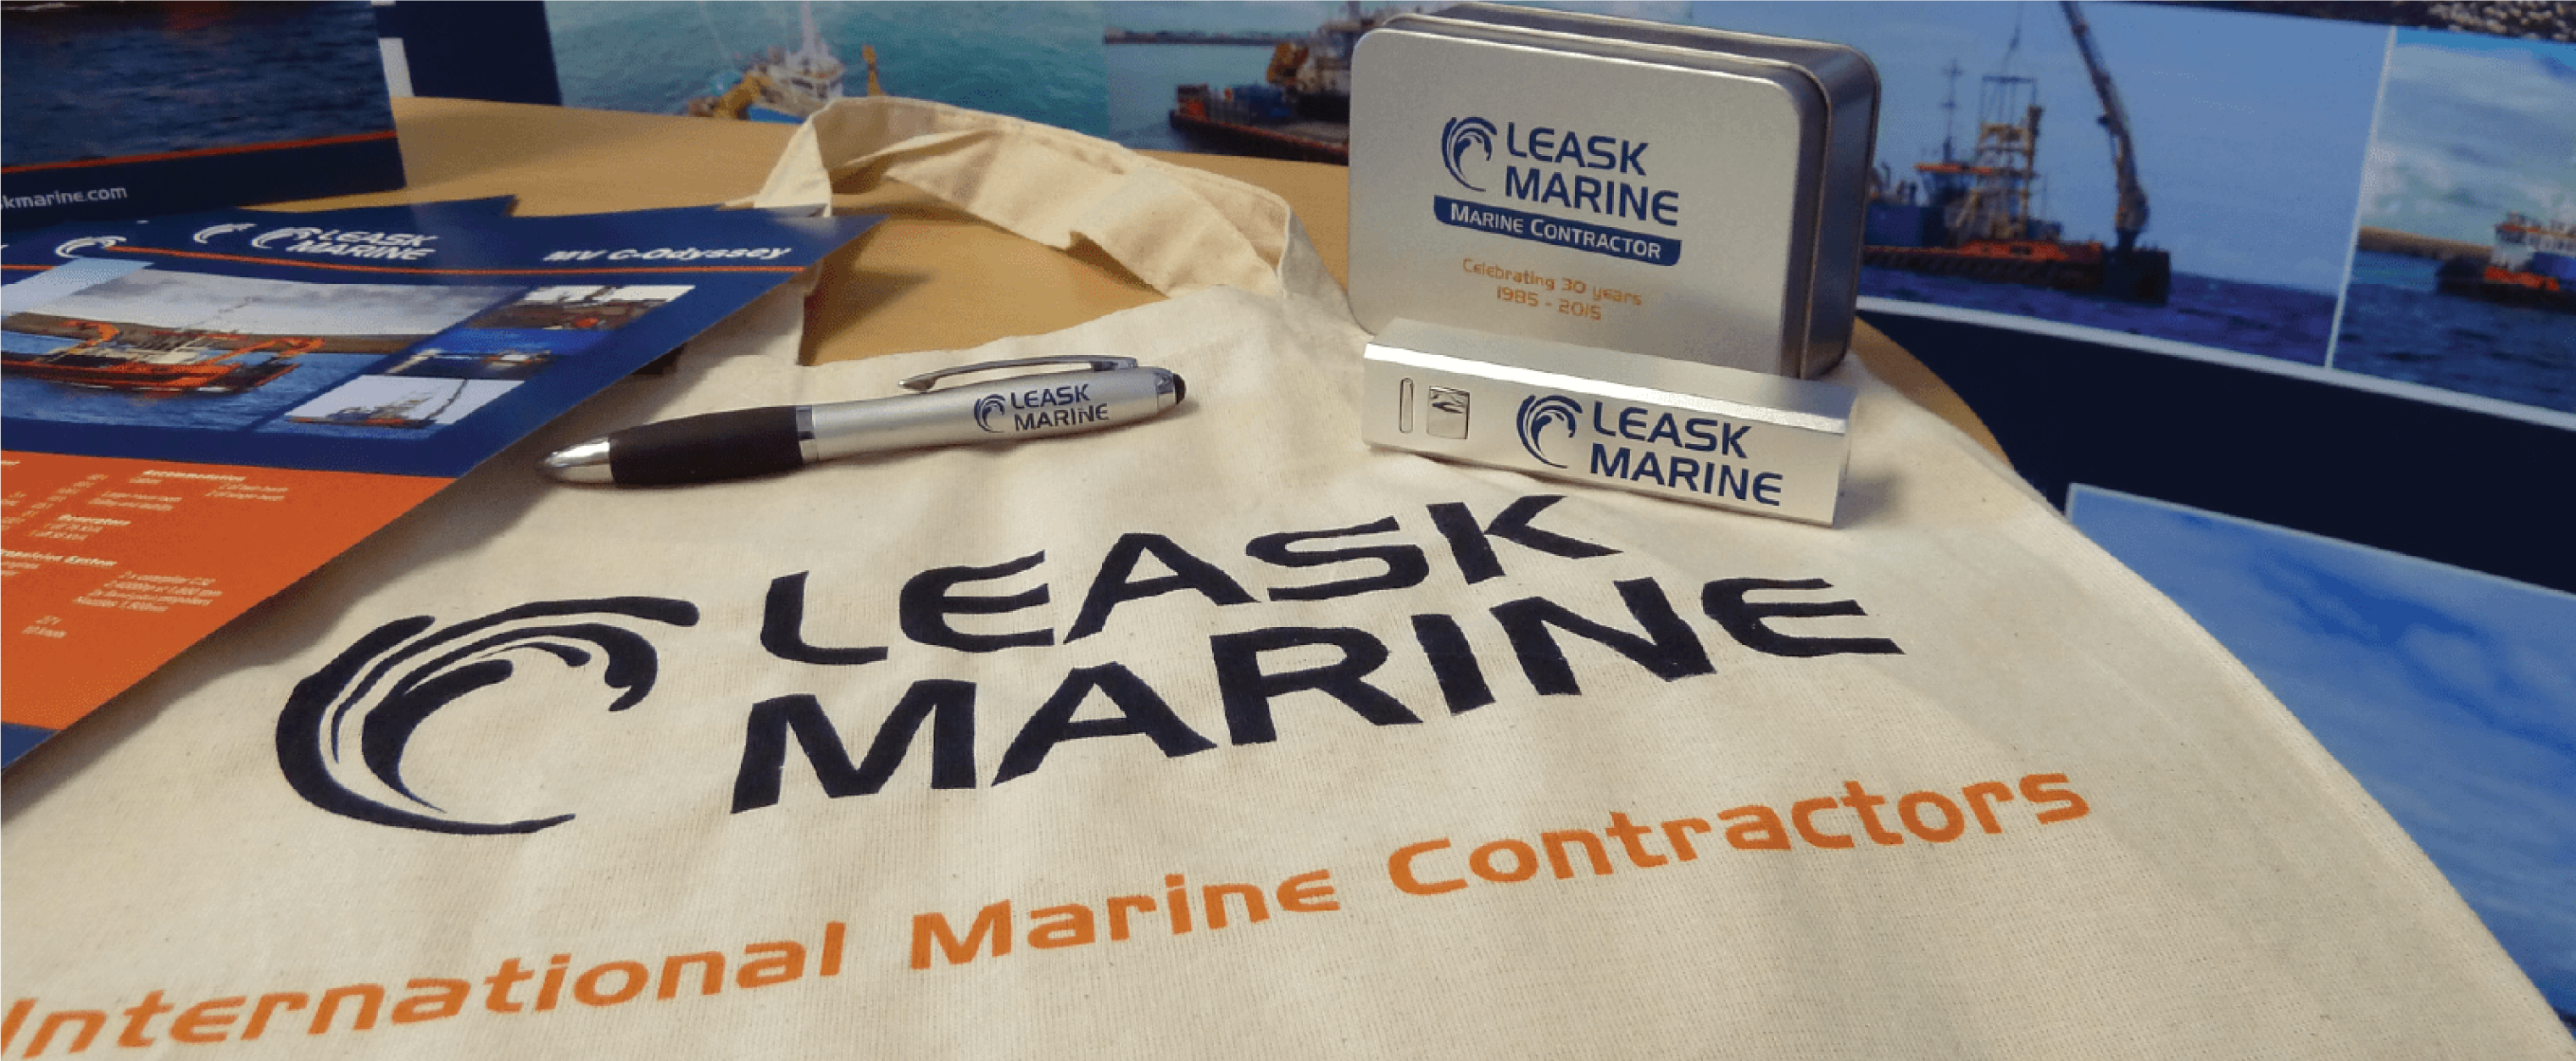 http://artmachinegraphics.co.uk/wpress/wp-content/uploads/2020/10/Slider-Leask-Marine-Promo-Products.png